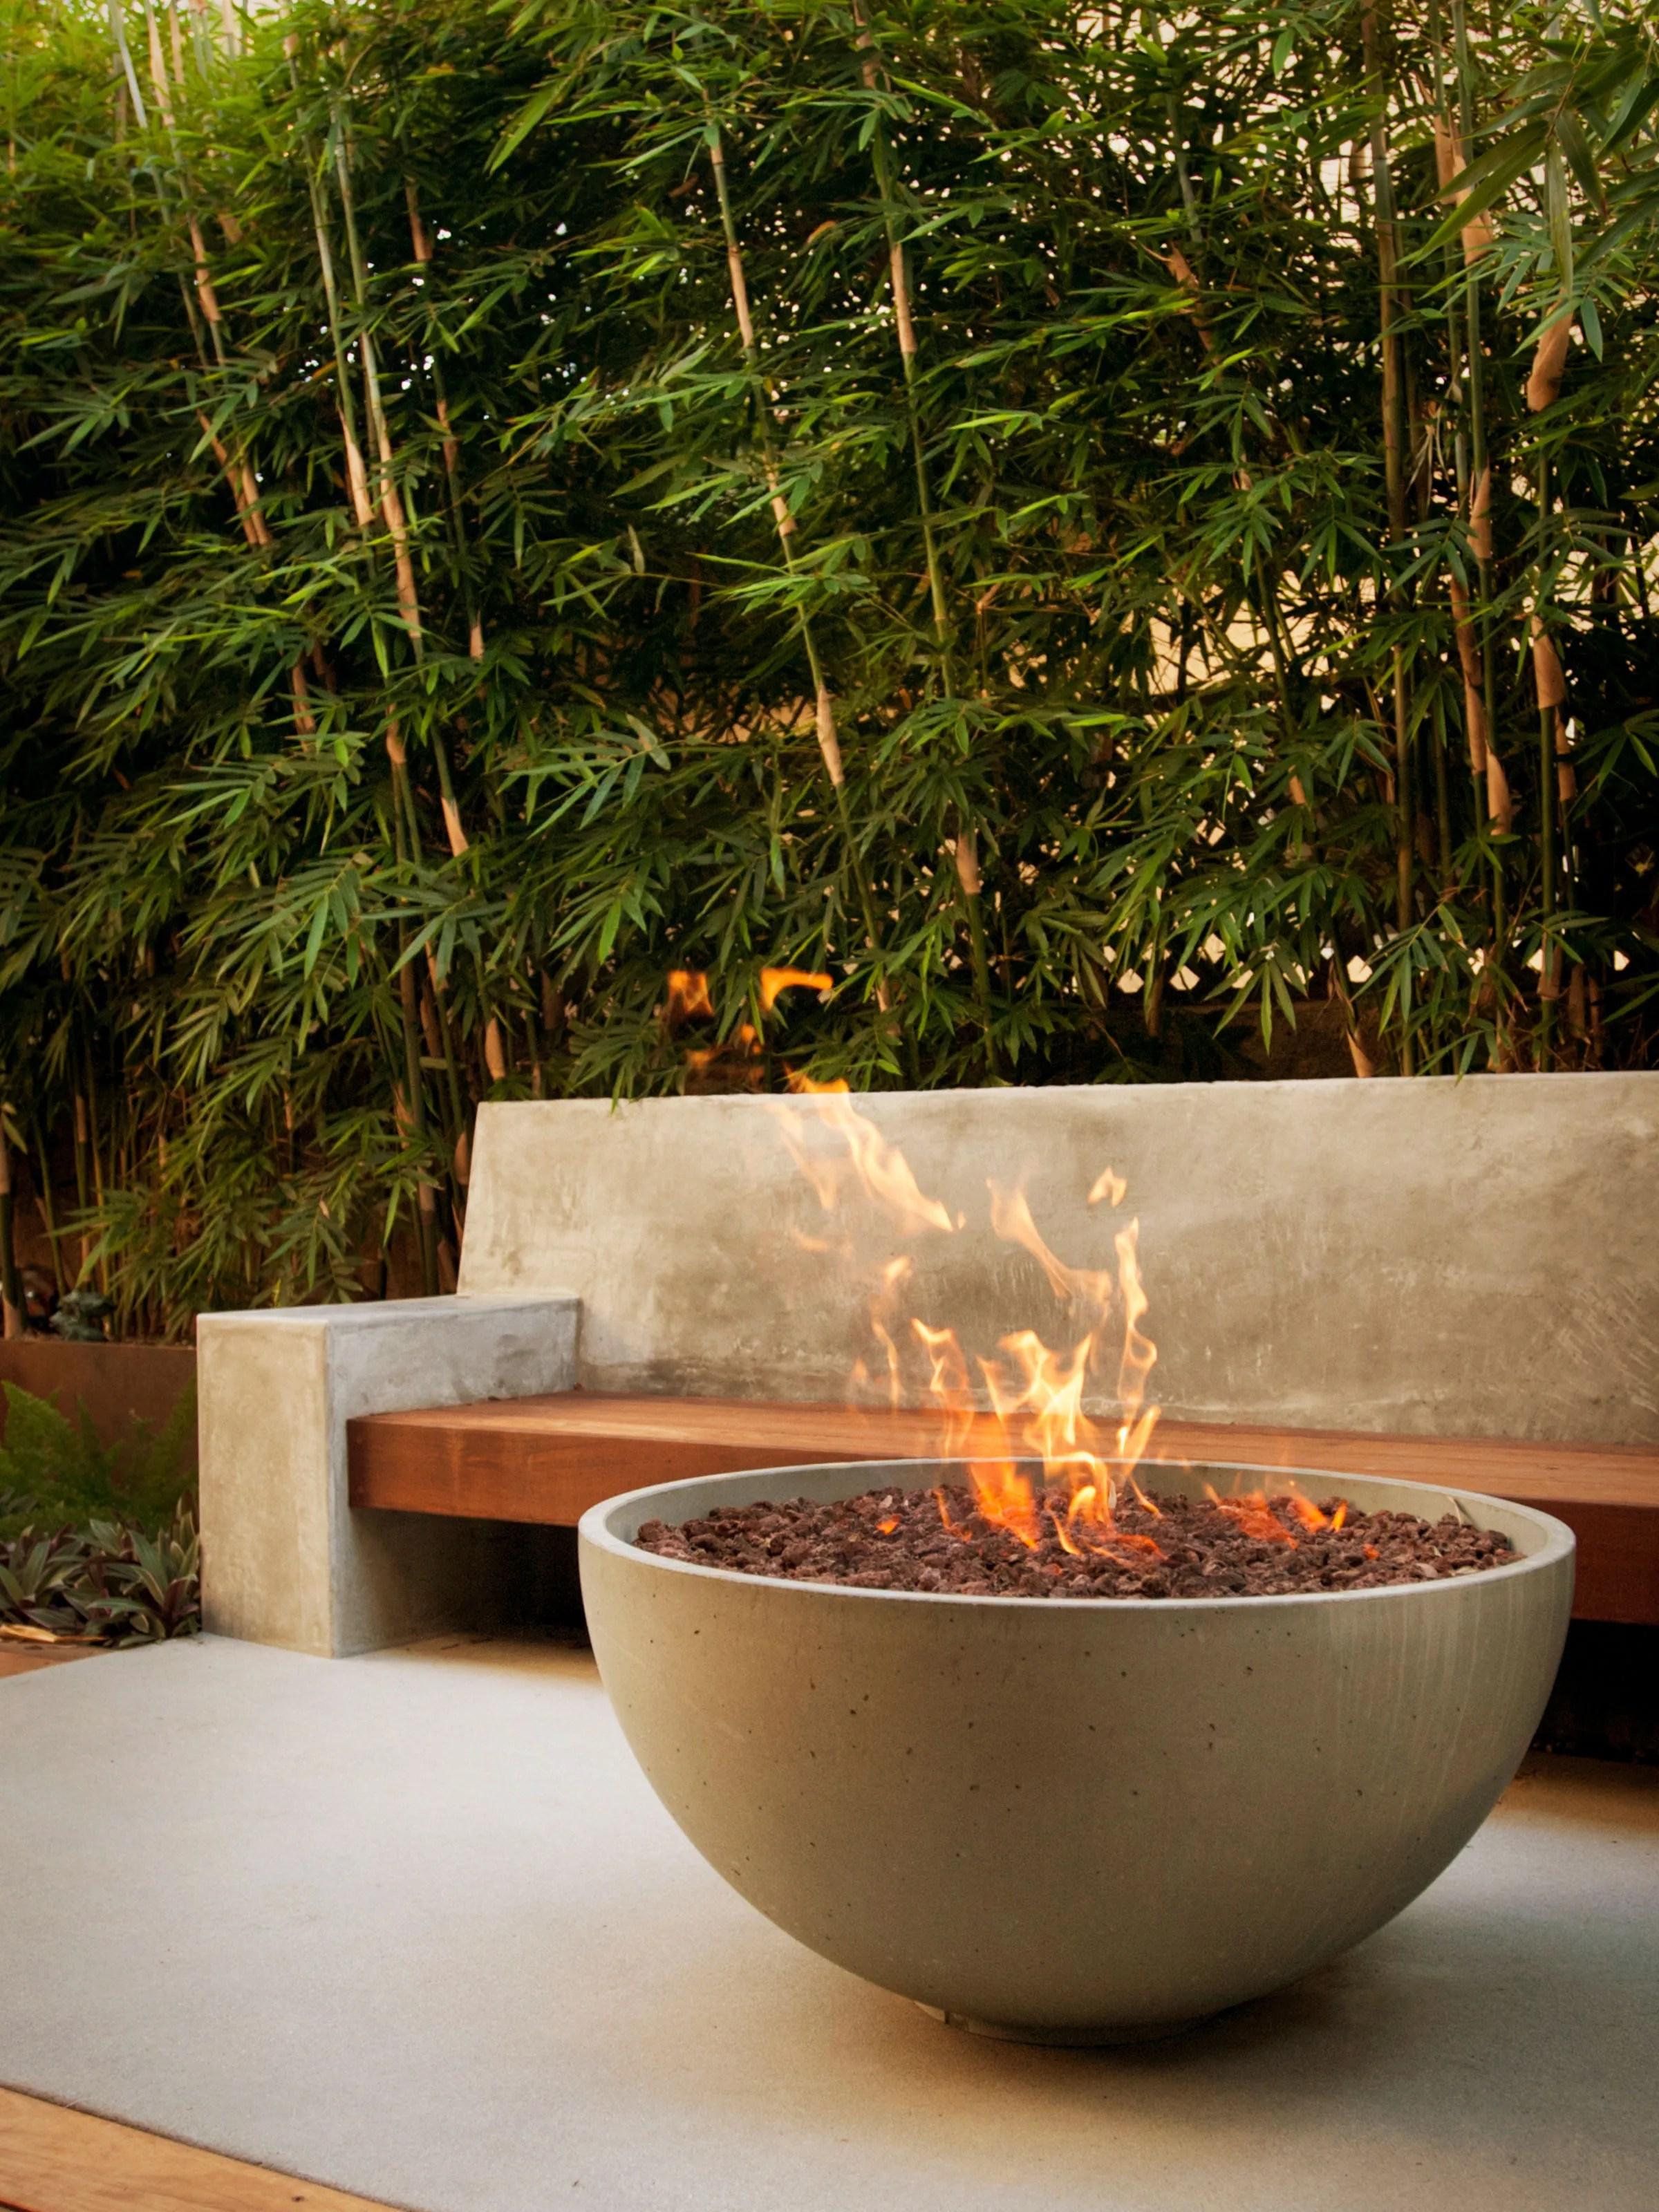 Patio Fire Pit Ideas 6 Fire Pit Ideas For Your Outdoor Space Architectural Digest